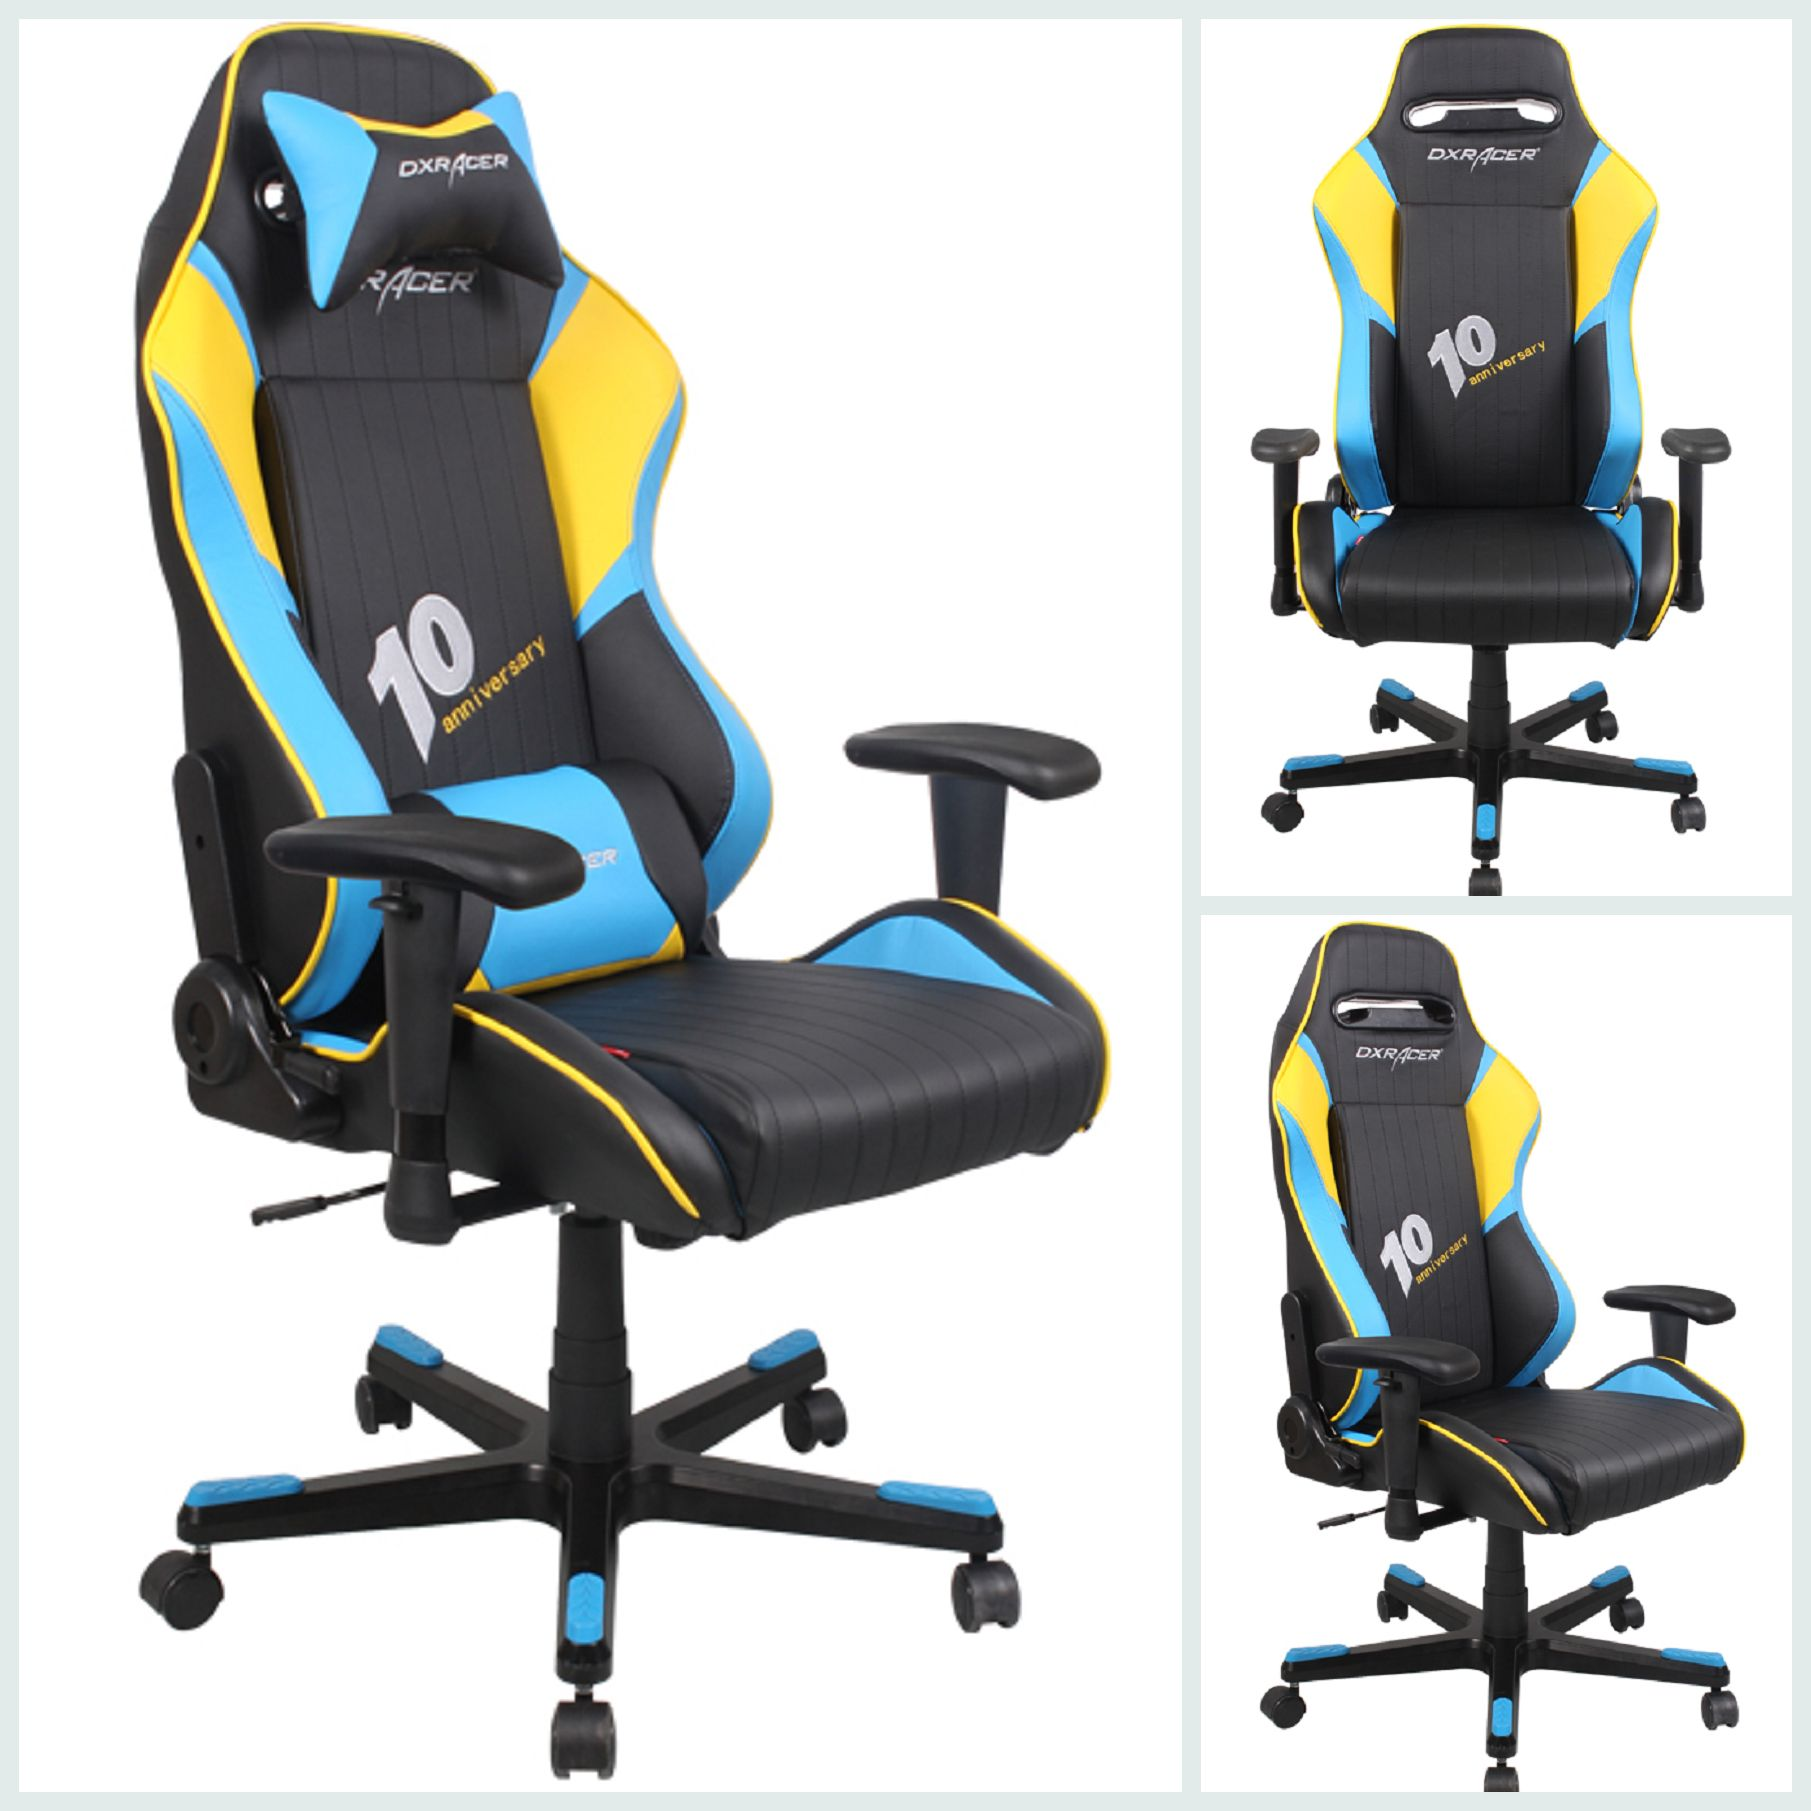 Hot Selling Chair Df53nby Black Yellow And Blue Colorshot